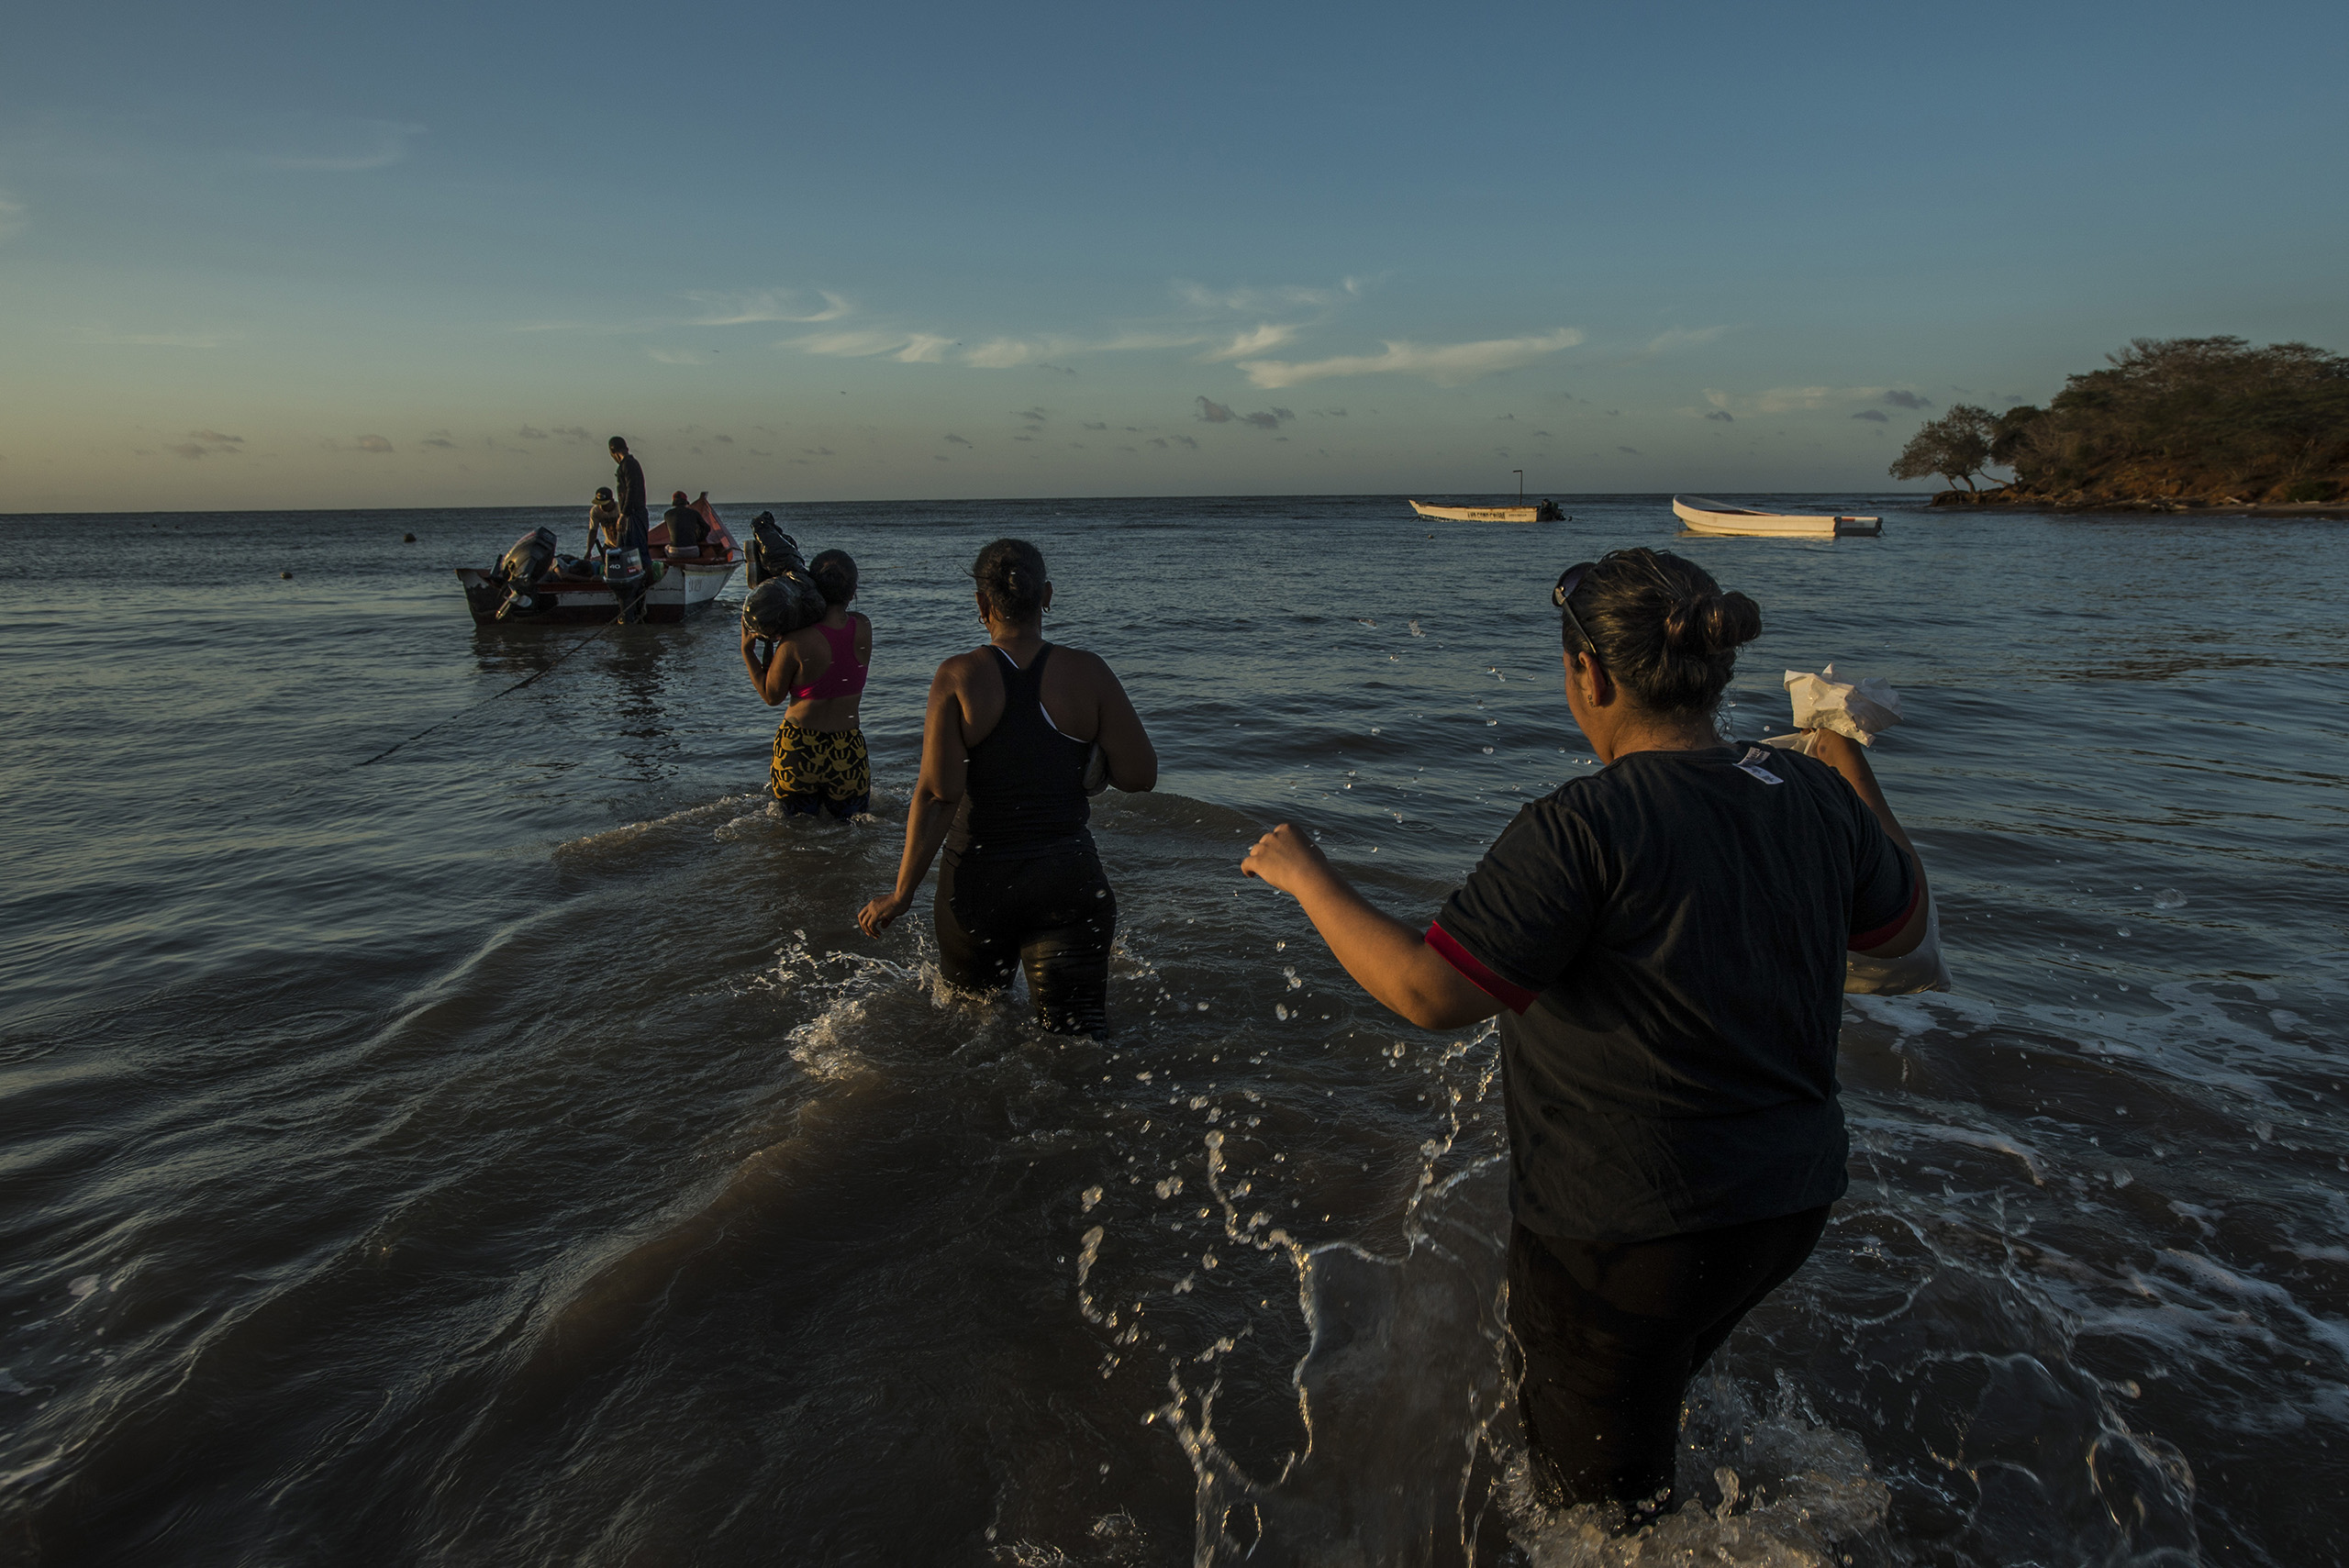 Migrants board a smuggler's boat that will take them to the Caribbean island of Curacao on Sept. 26, 2016. More than 150,000 people have fled the economic collapse in Venezuela in the last year alone, the most in more than a decade, scholars say, with the sea route posing special dangers.